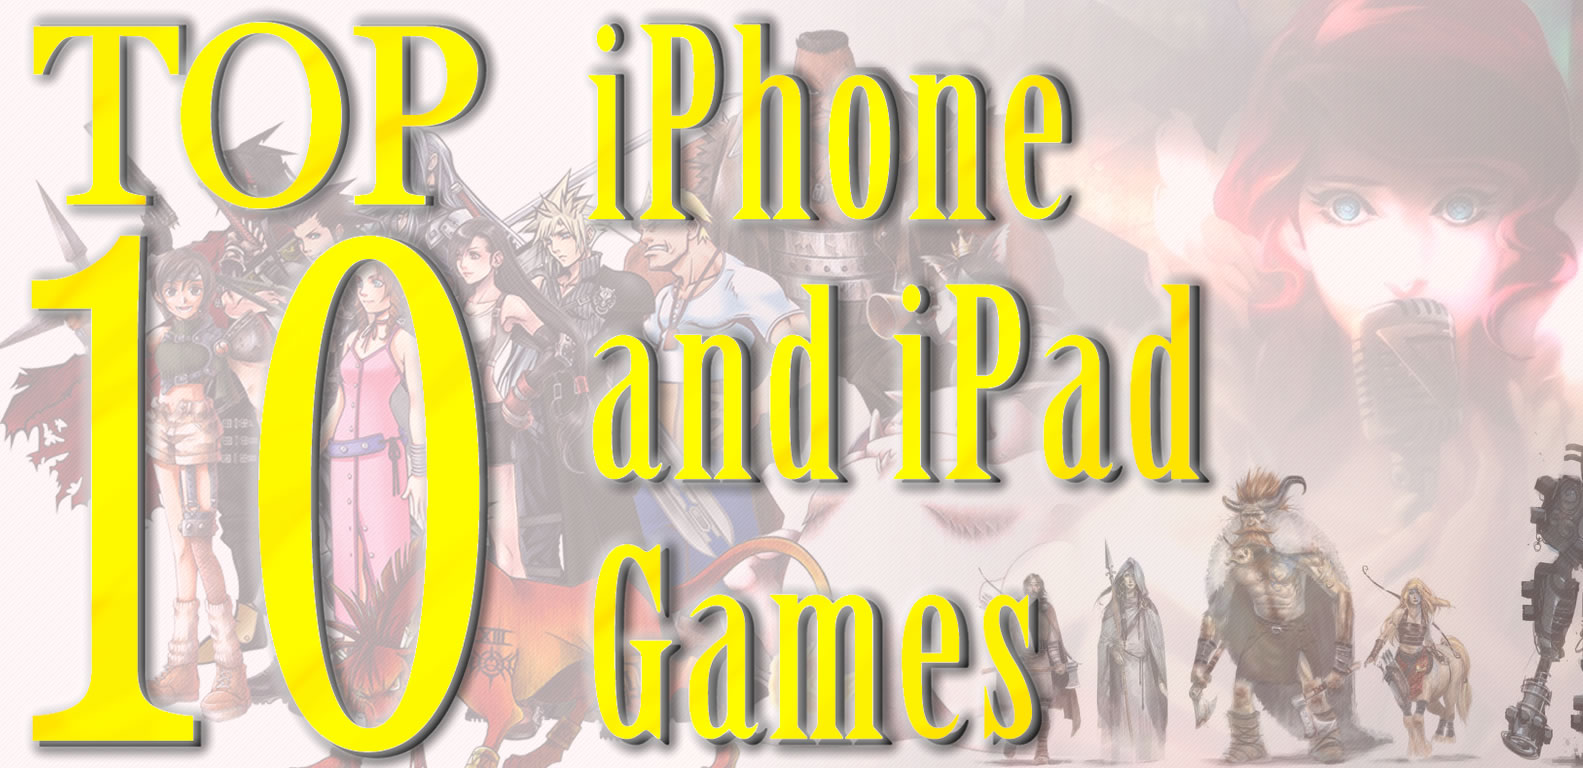 Top Ten iPhone and iPad Games